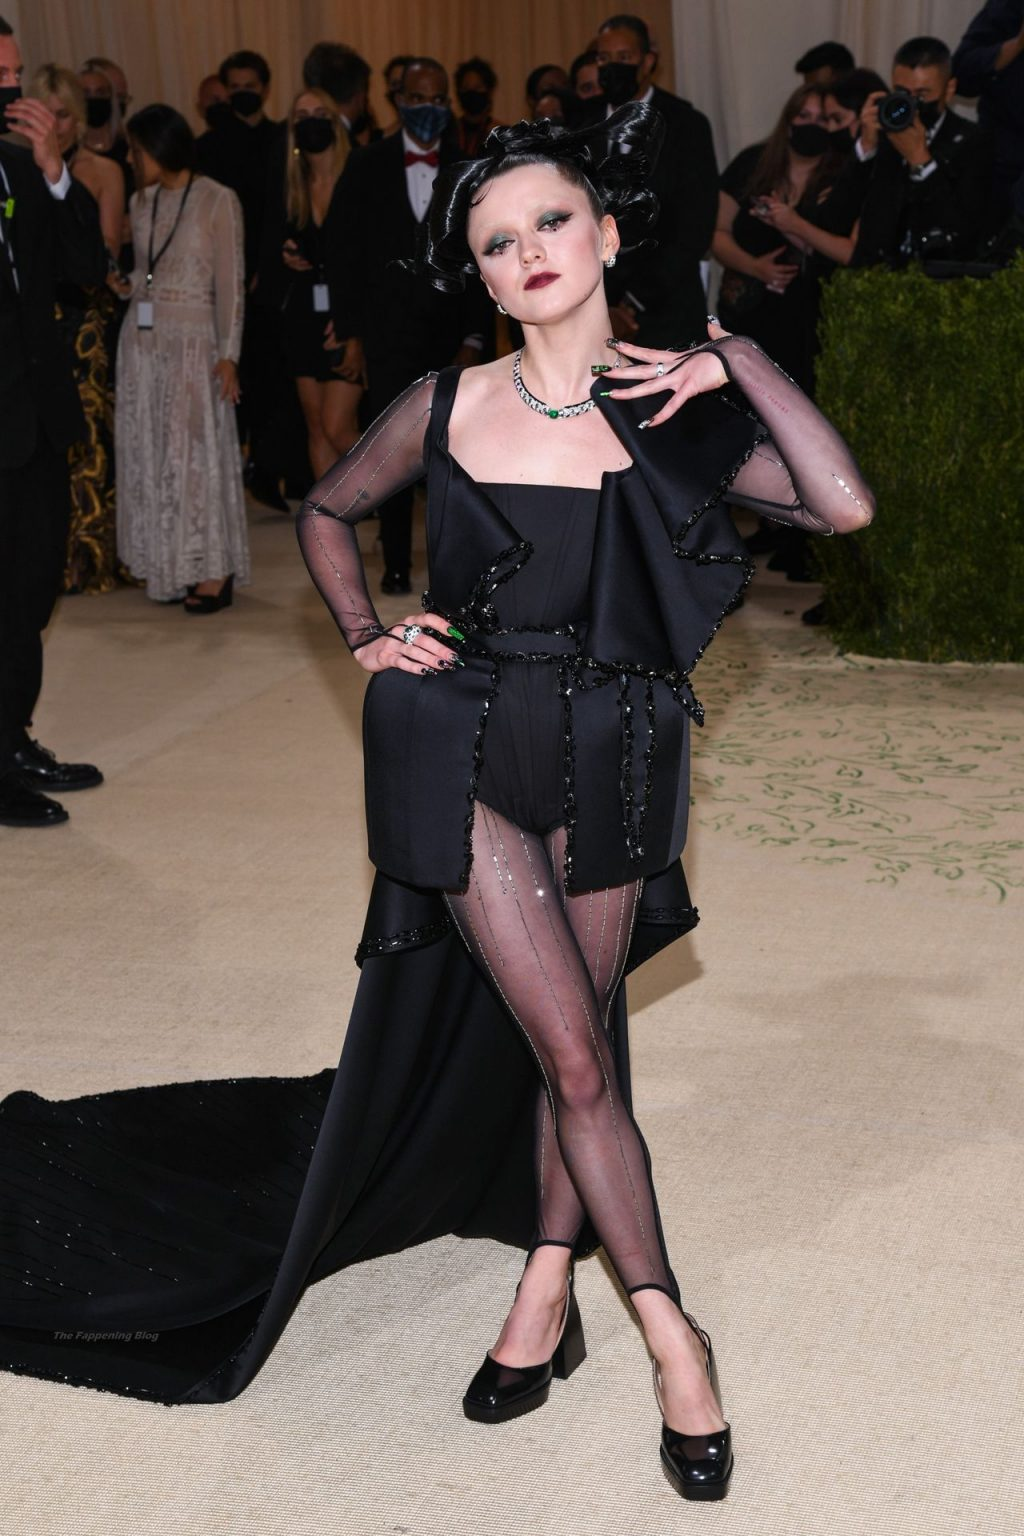 Maisie Williams Poses on the Red Carpet at the 2021 Met Gala (36 Photos)